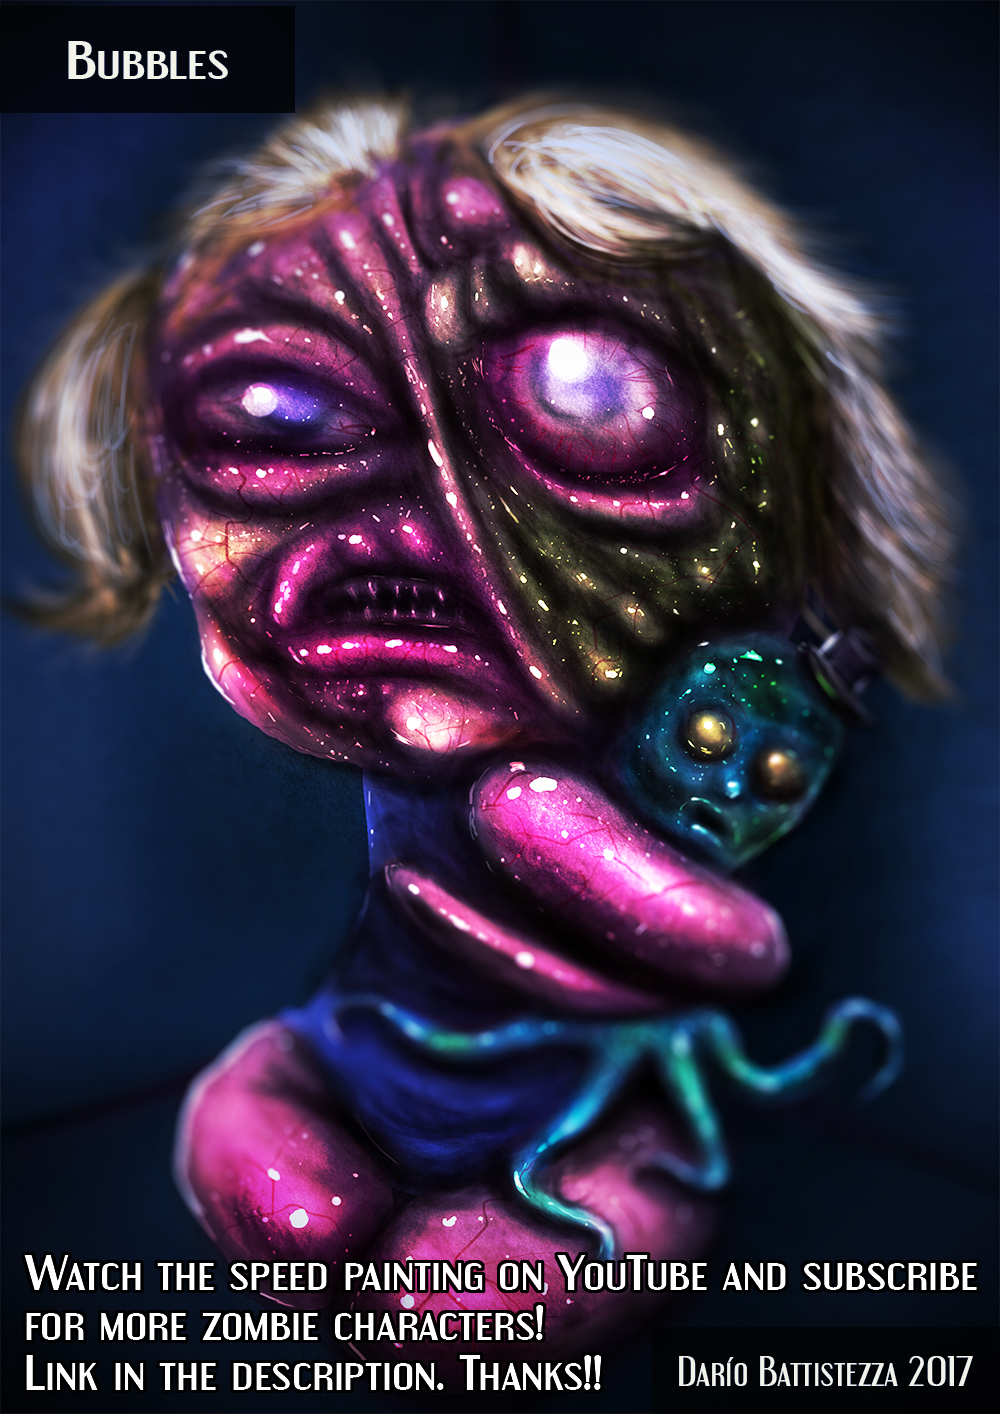 Bubbles from PowerPuff Girls - ZOMBIE EDITION !!